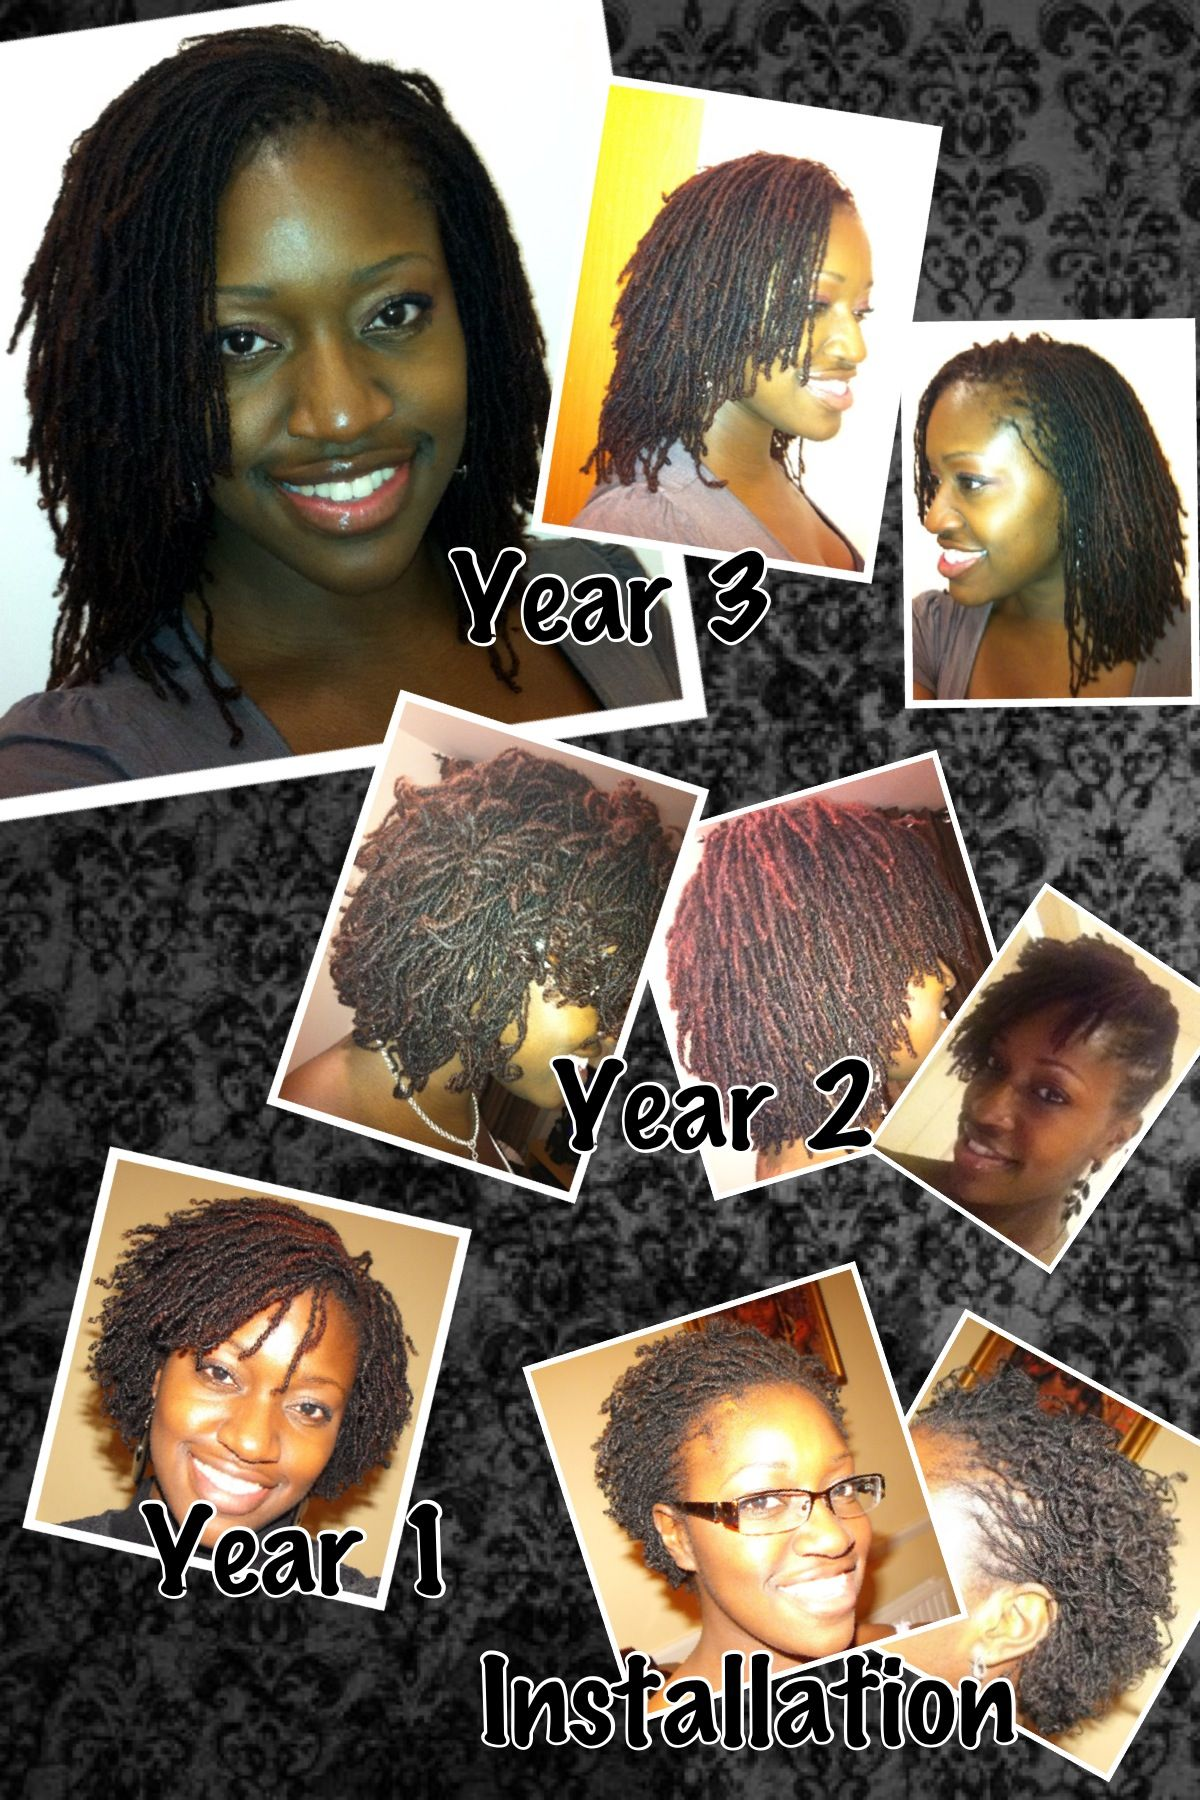 Happy anniversary to my hair. I've had Sisterlocks for 3 years and absolutely love them. Go team natural :-)